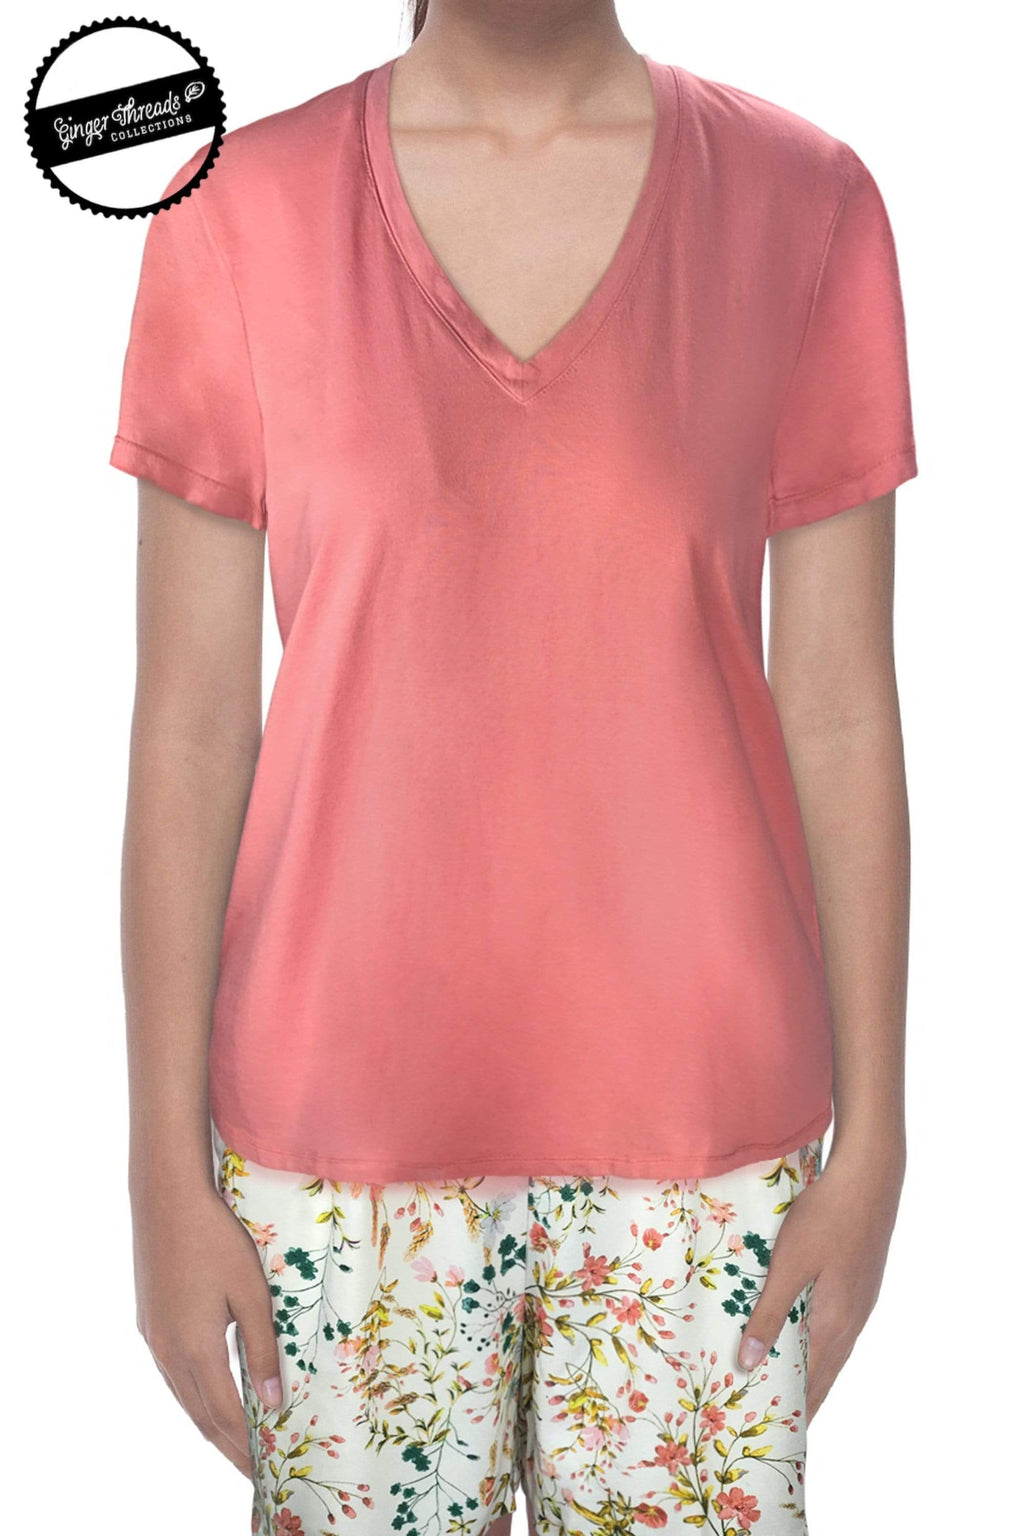 Ginger Threads Collections top Burnt Coral T-shirt